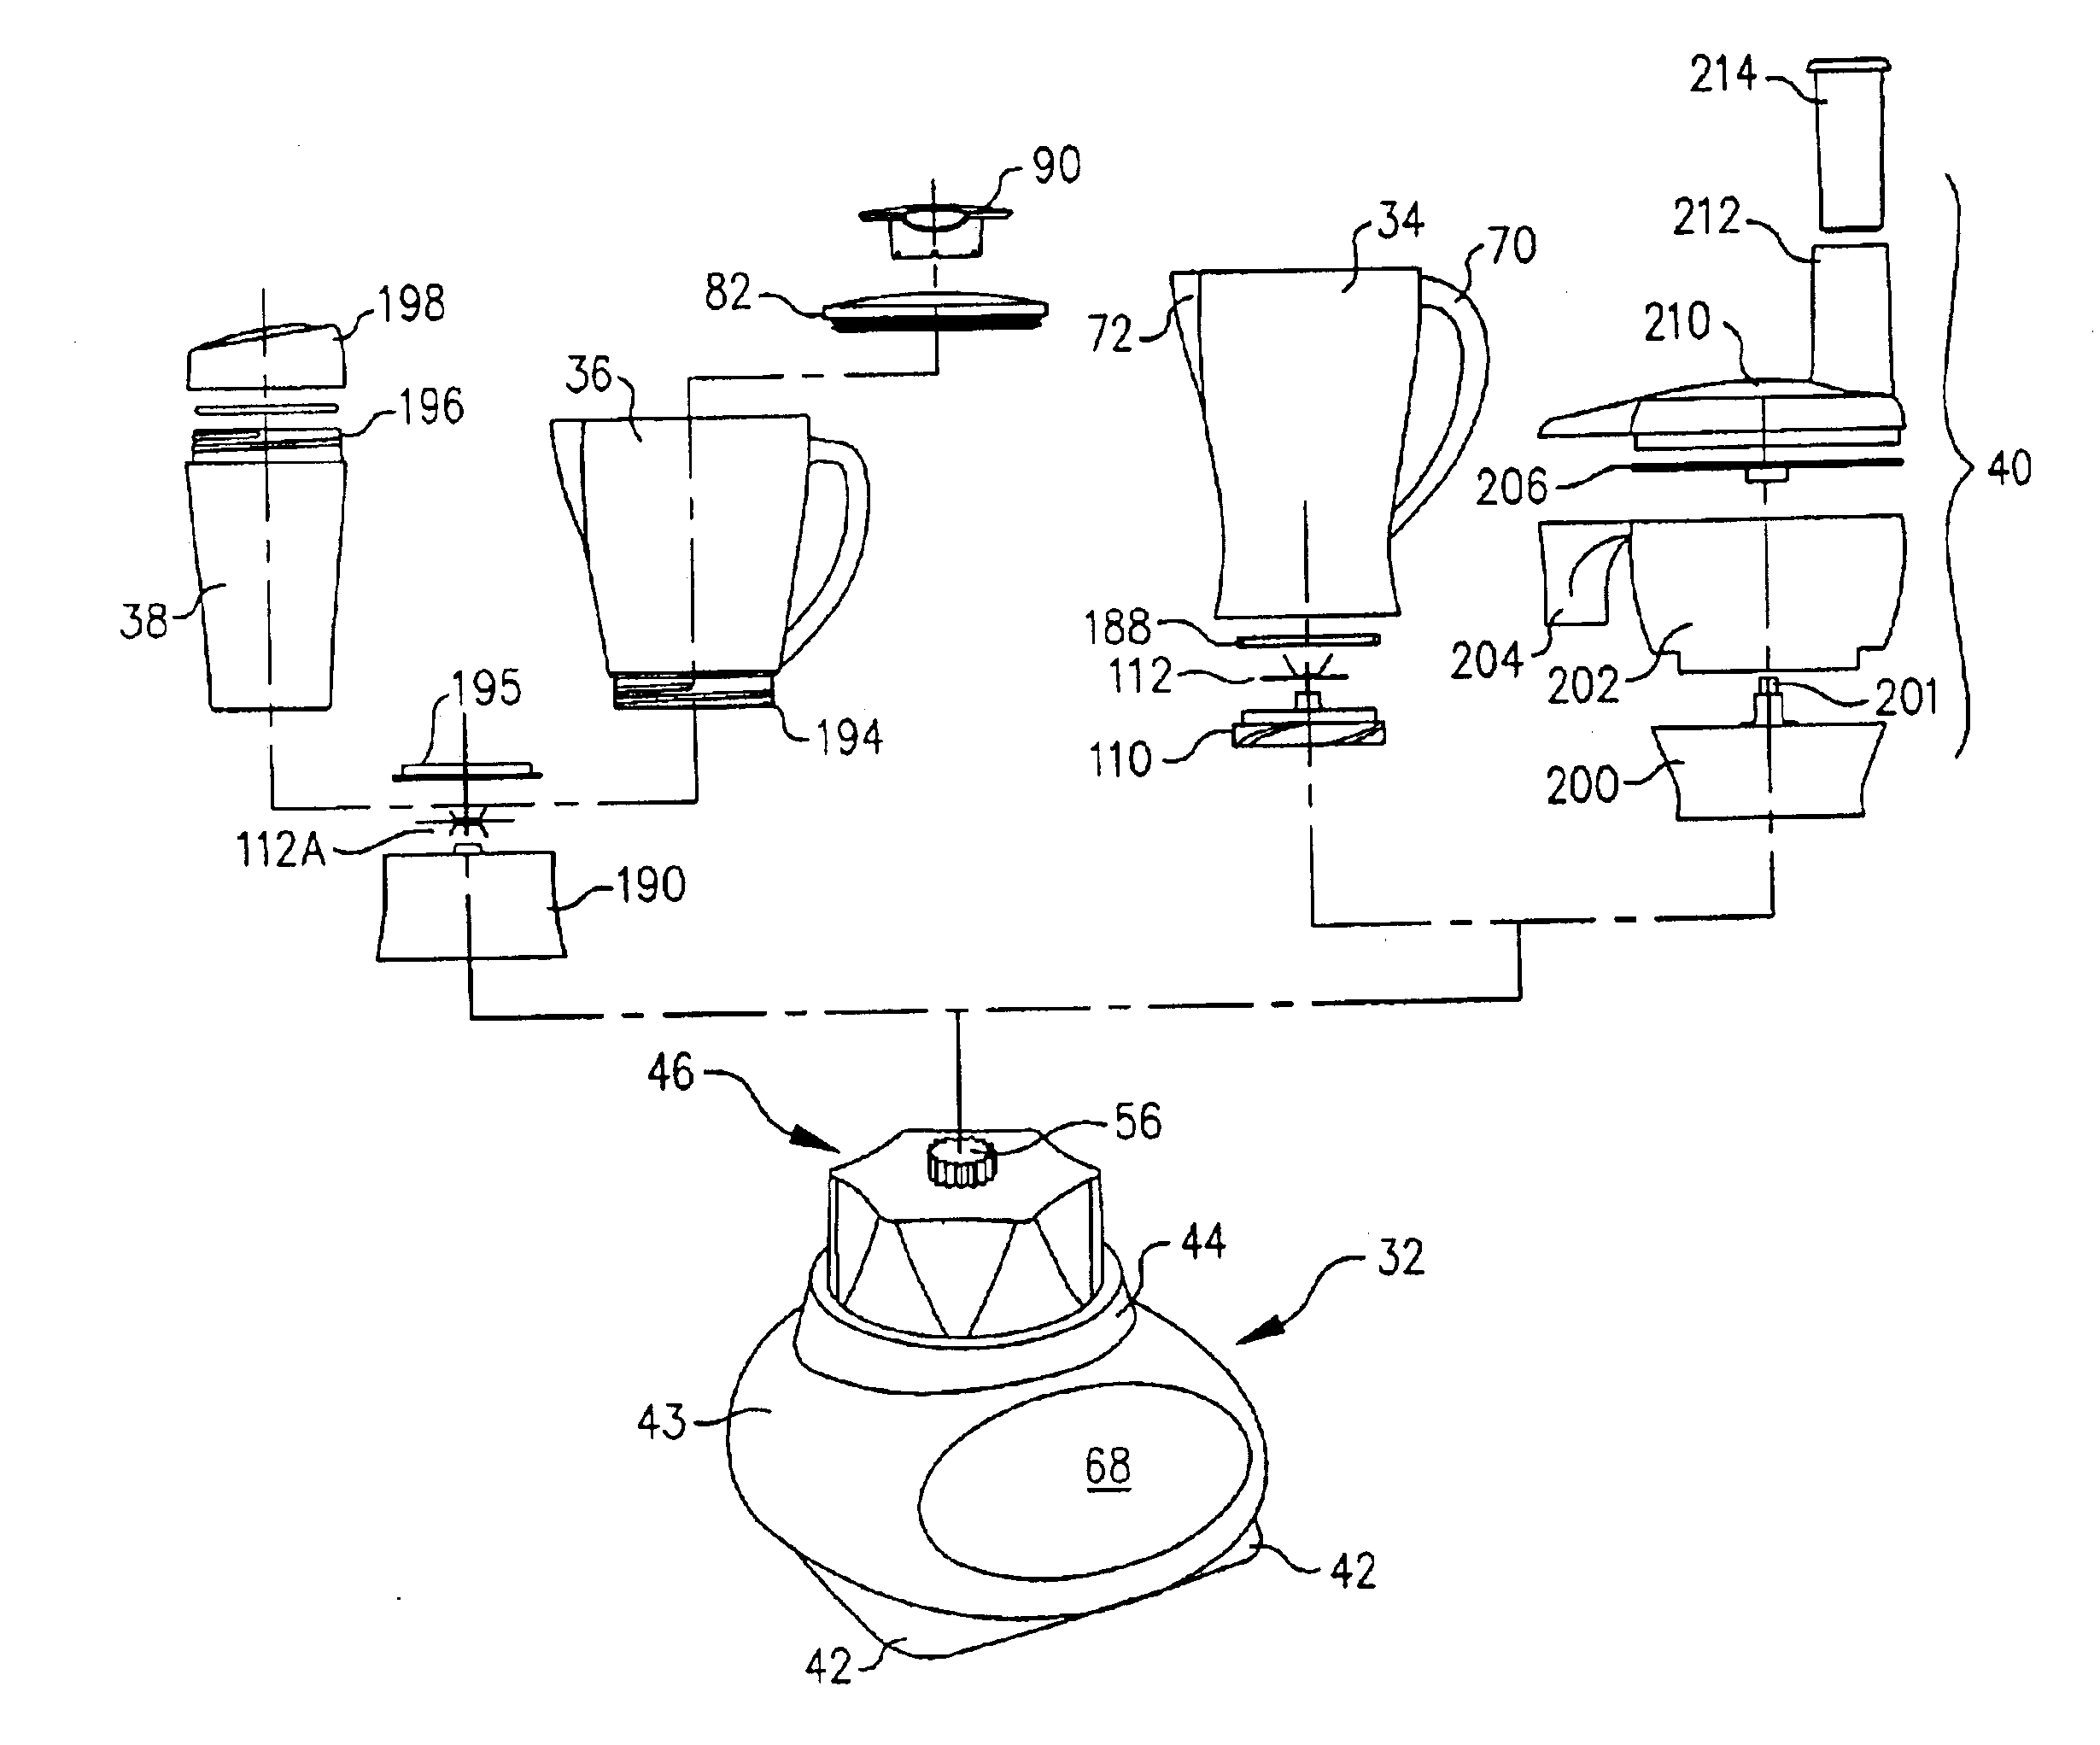 Bunn Coffee Wire Diagrams Wiring Diagram Will Be A Thing Mixer Grinder 28 Images Makers At Lowes Logo